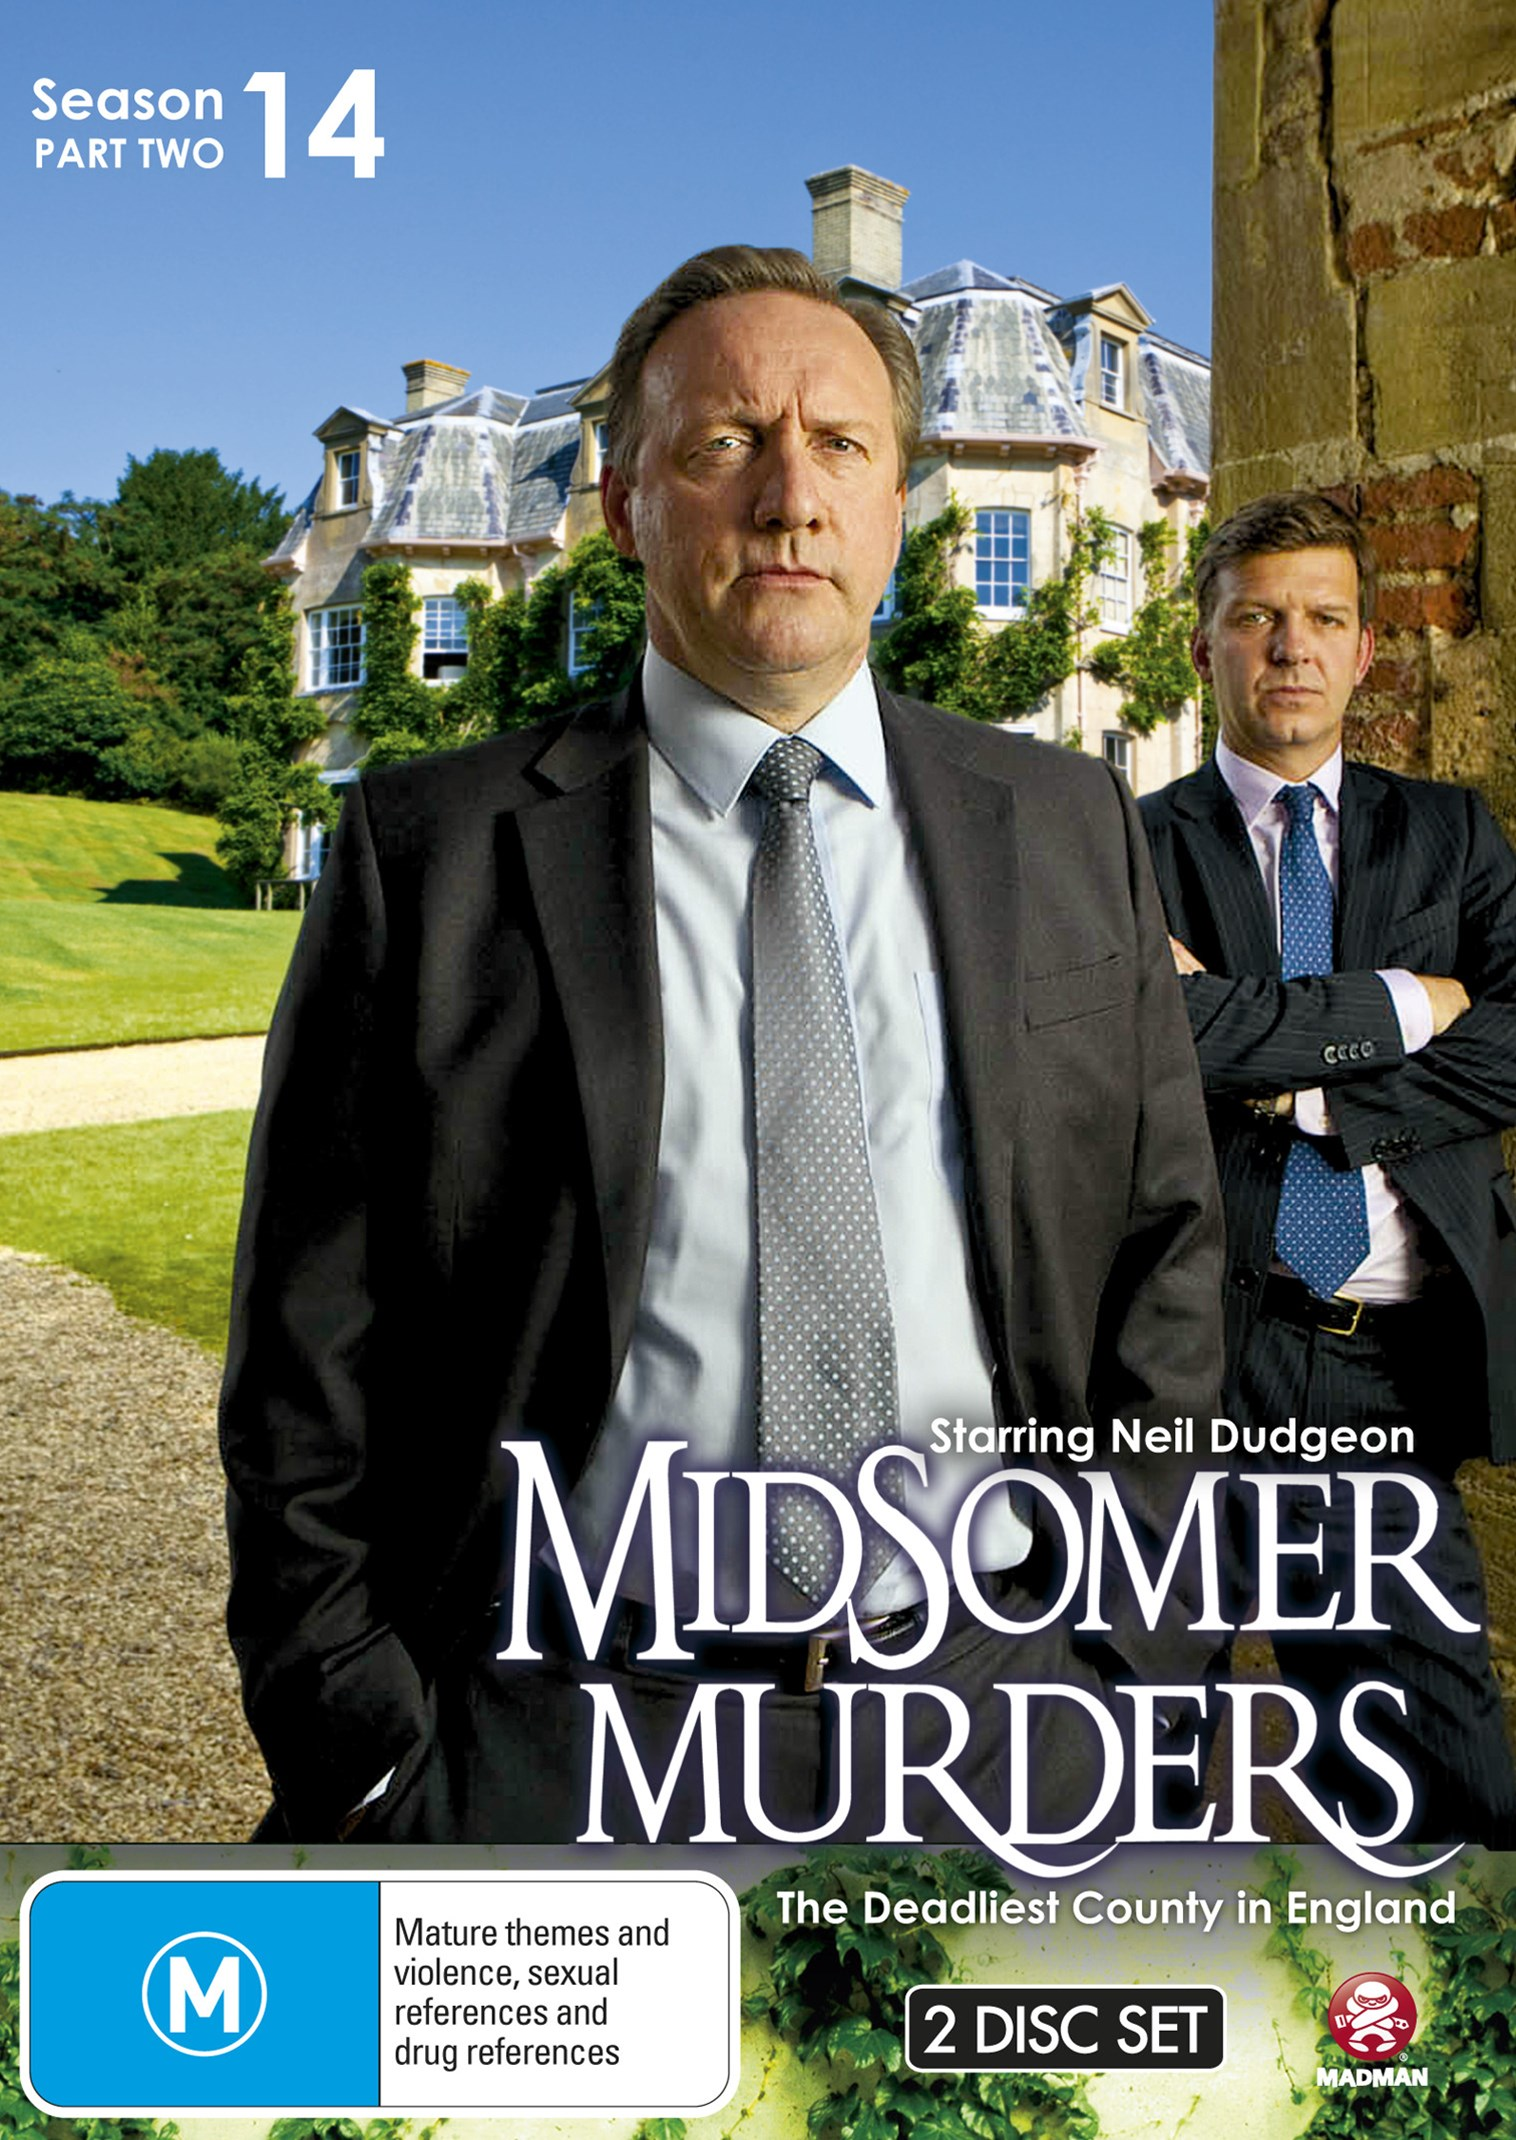 Midsomer Murders Season 14 (Part 2)